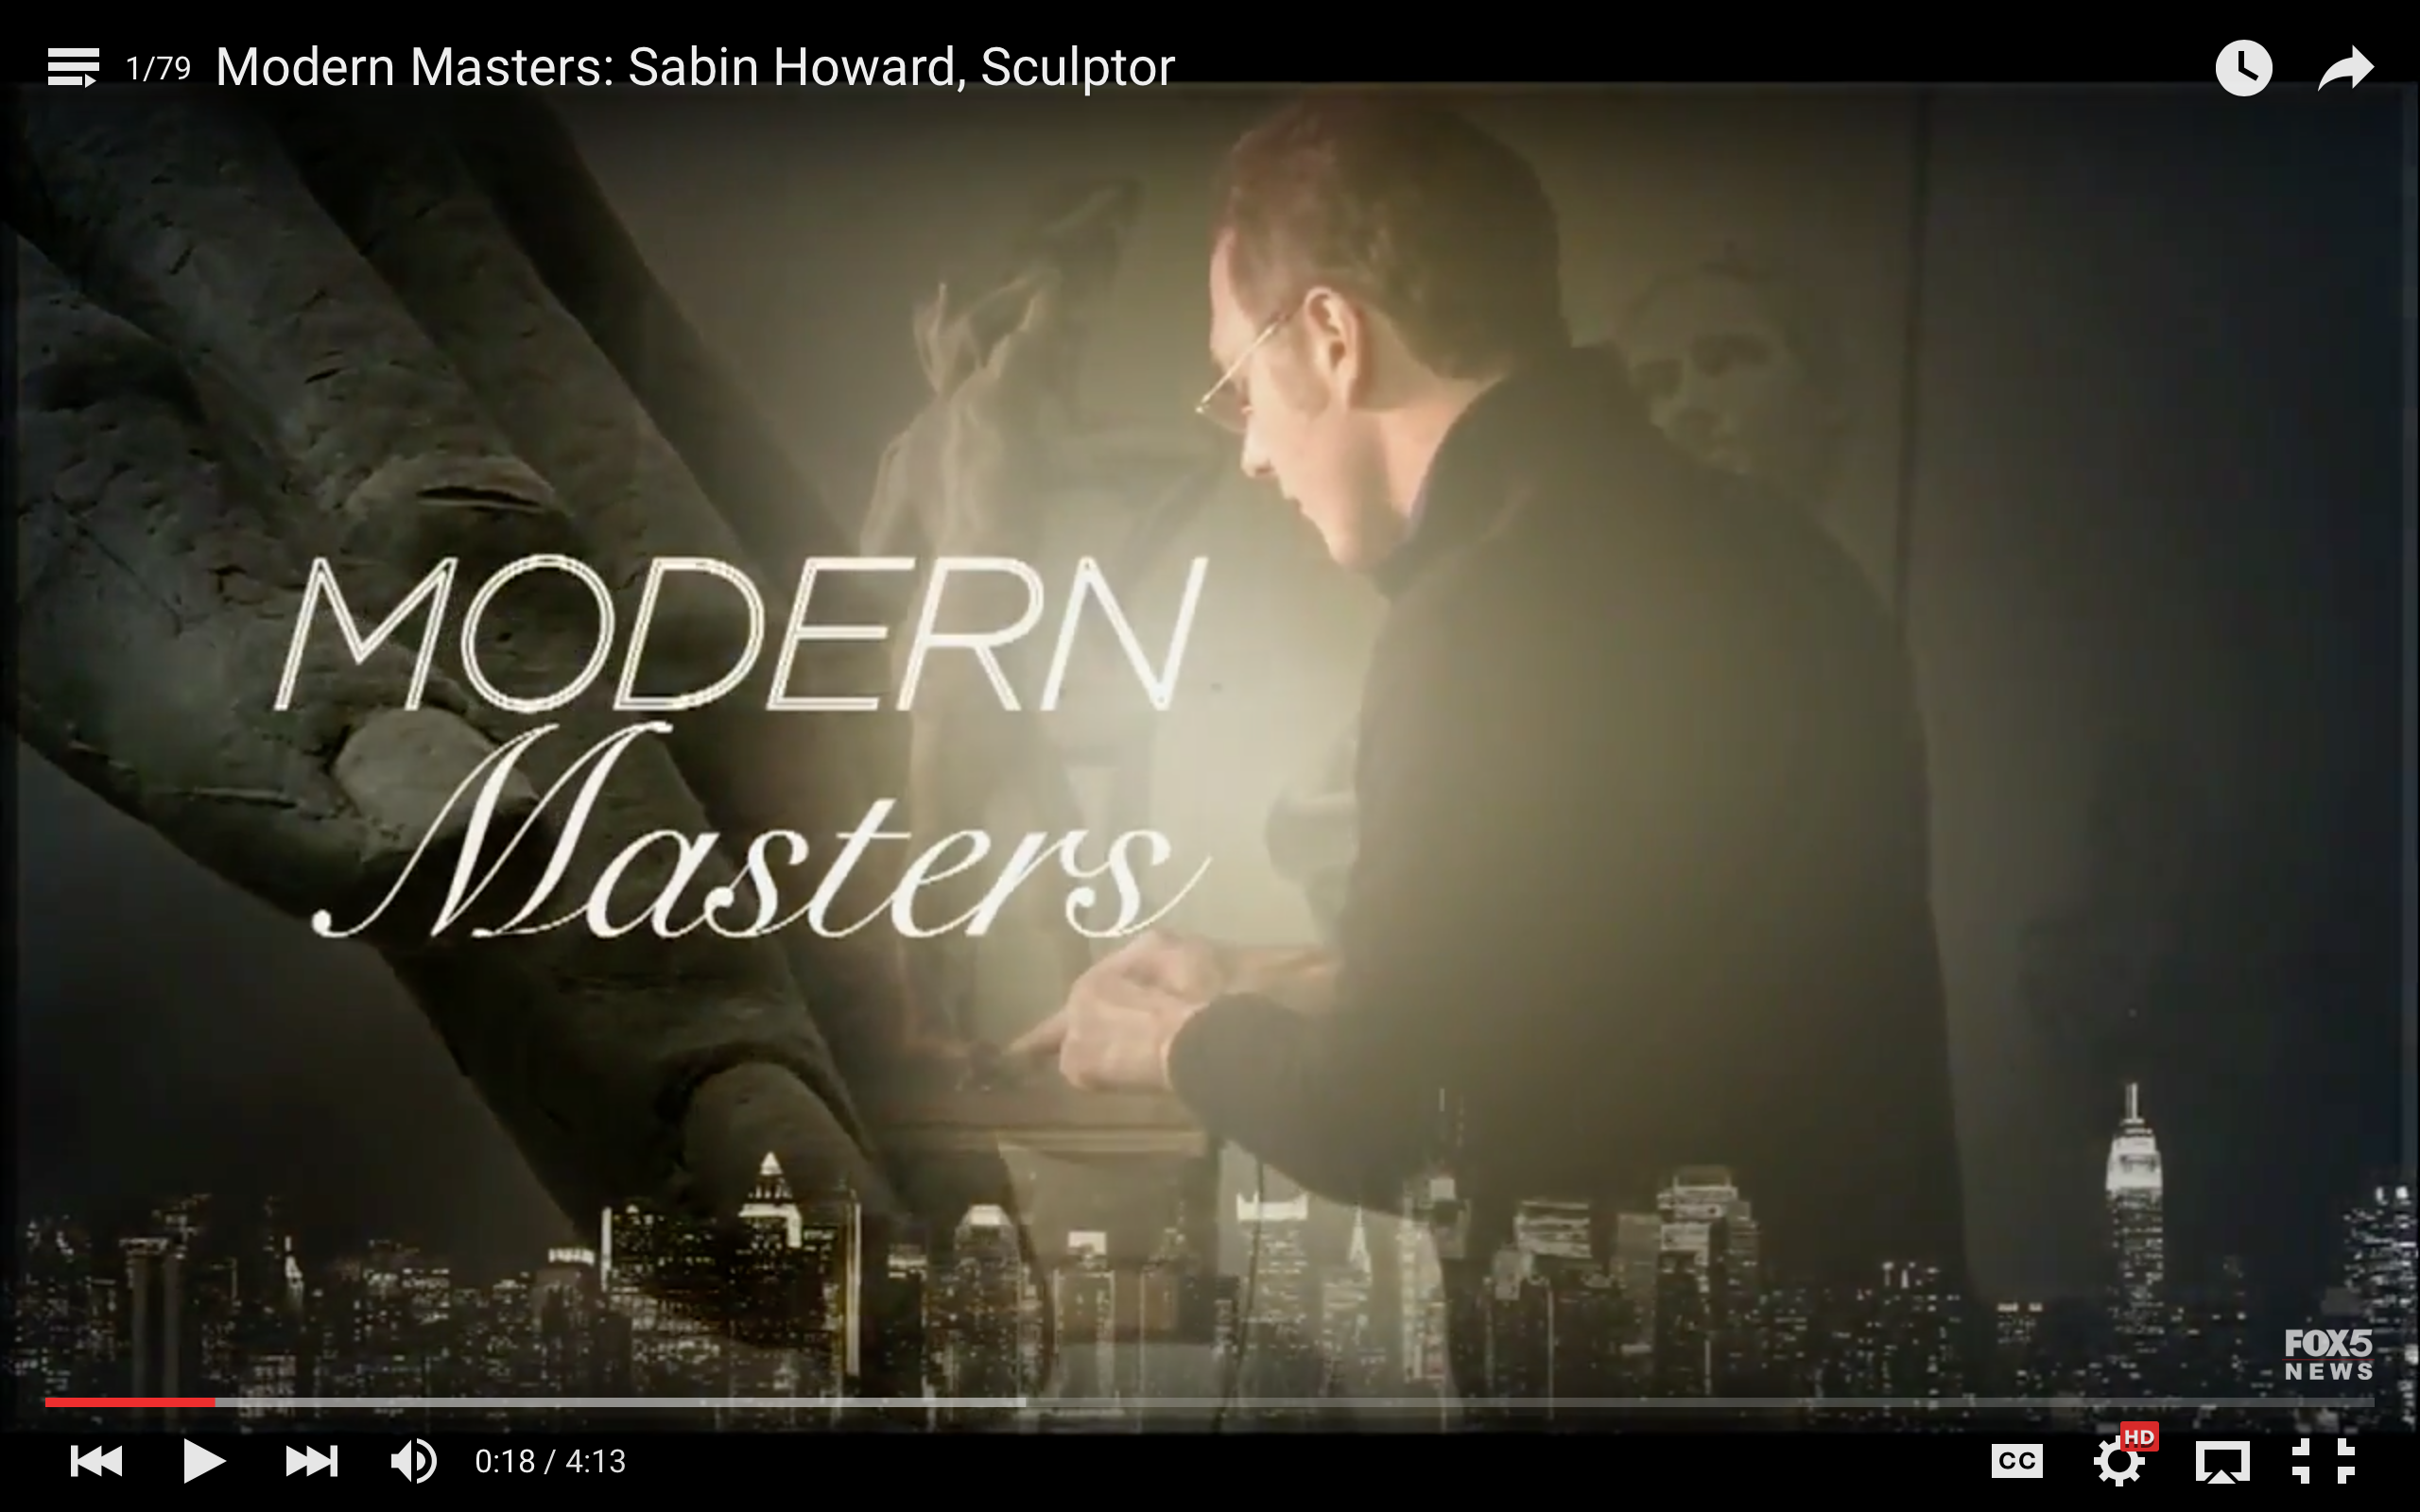 Modern Masters: Sabin Howard, Sculptor, on Fox TV